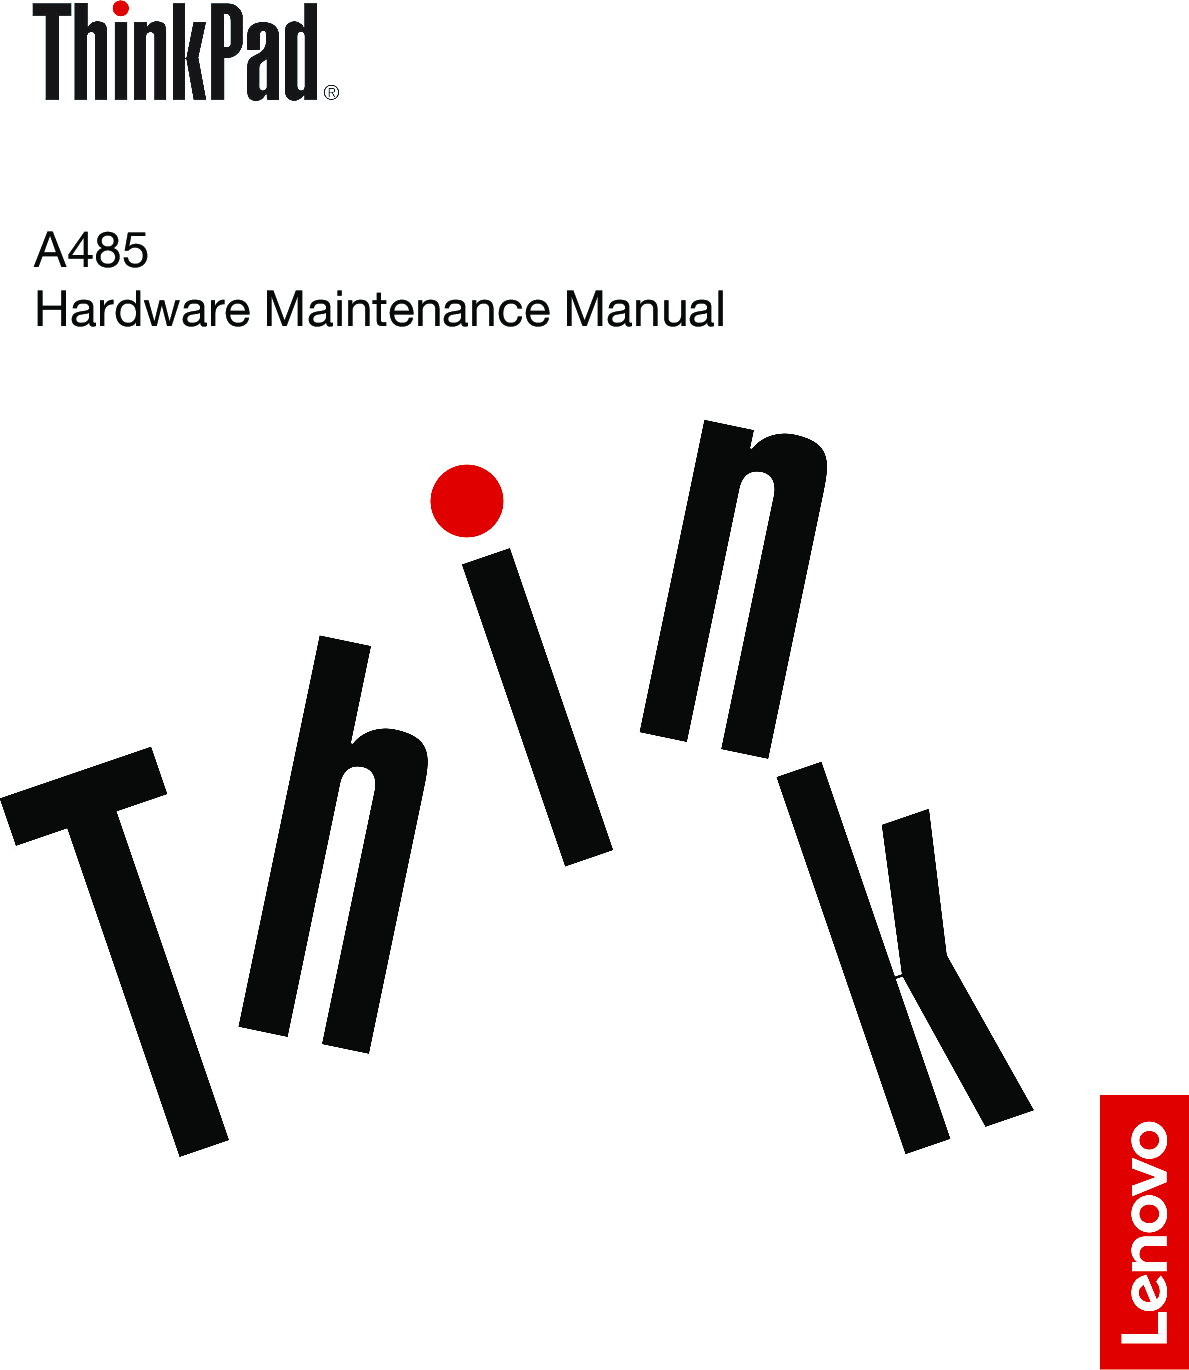 Lenovo A485 Hardware Maintenance Manual (English) Think